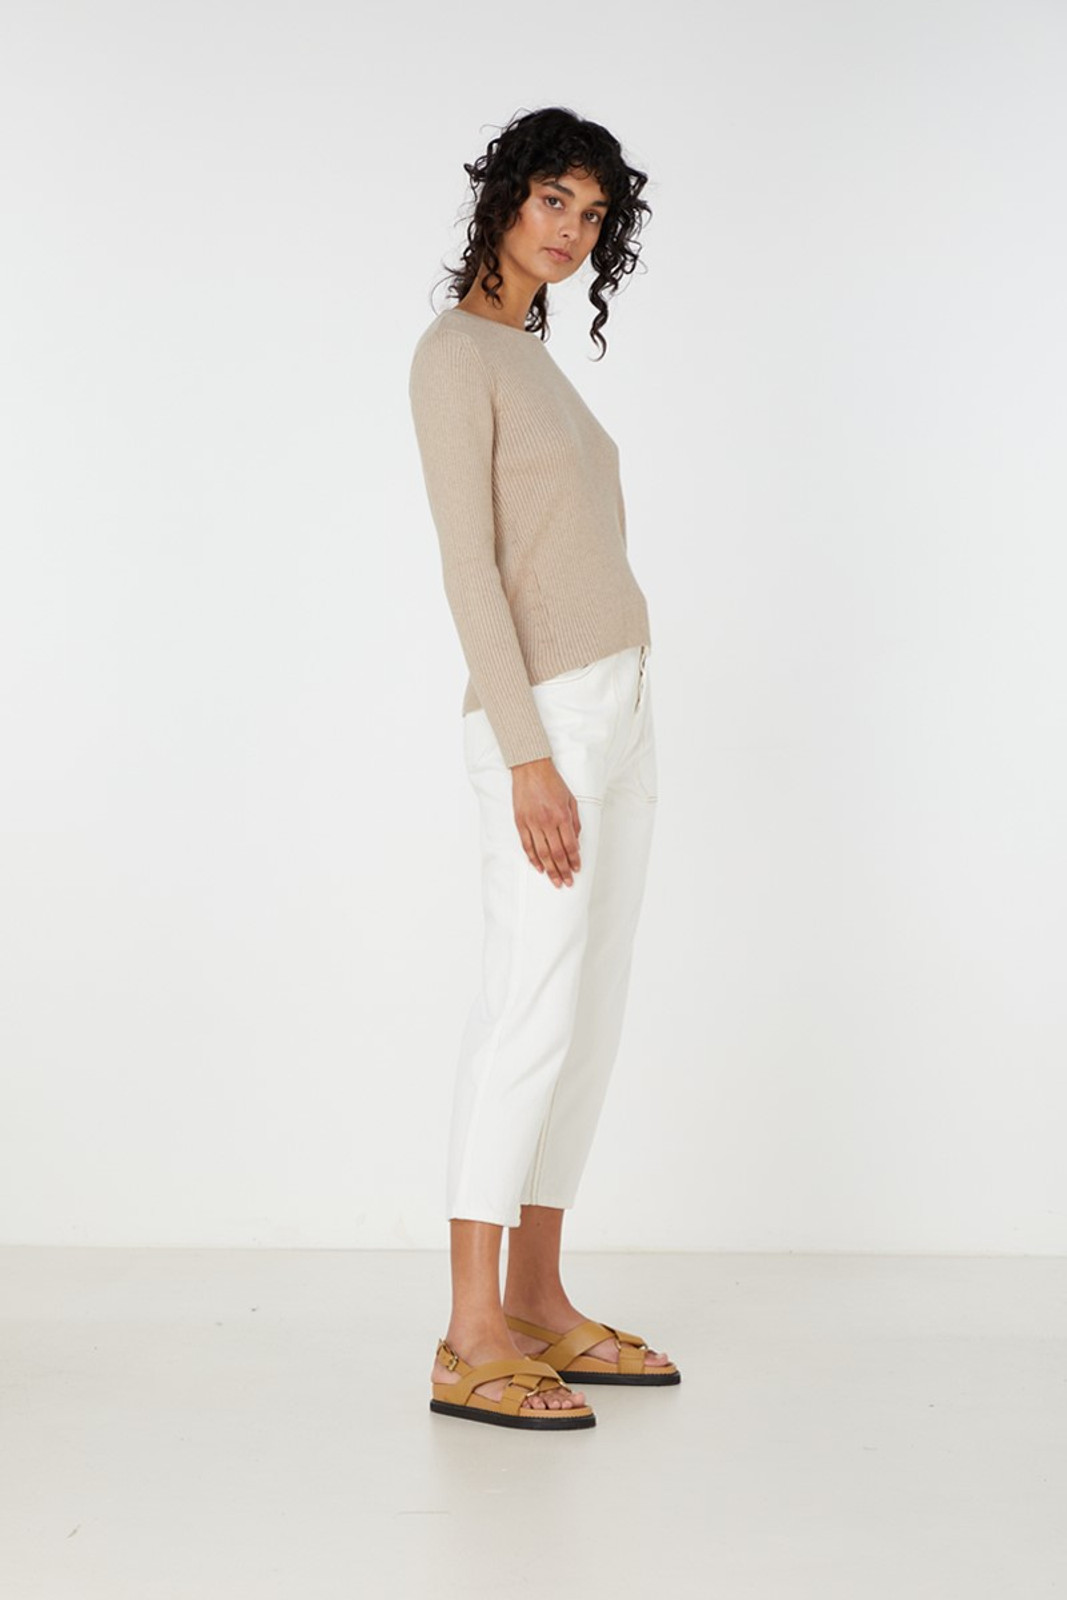 Elka Collective Houston Knit Neutrals  4